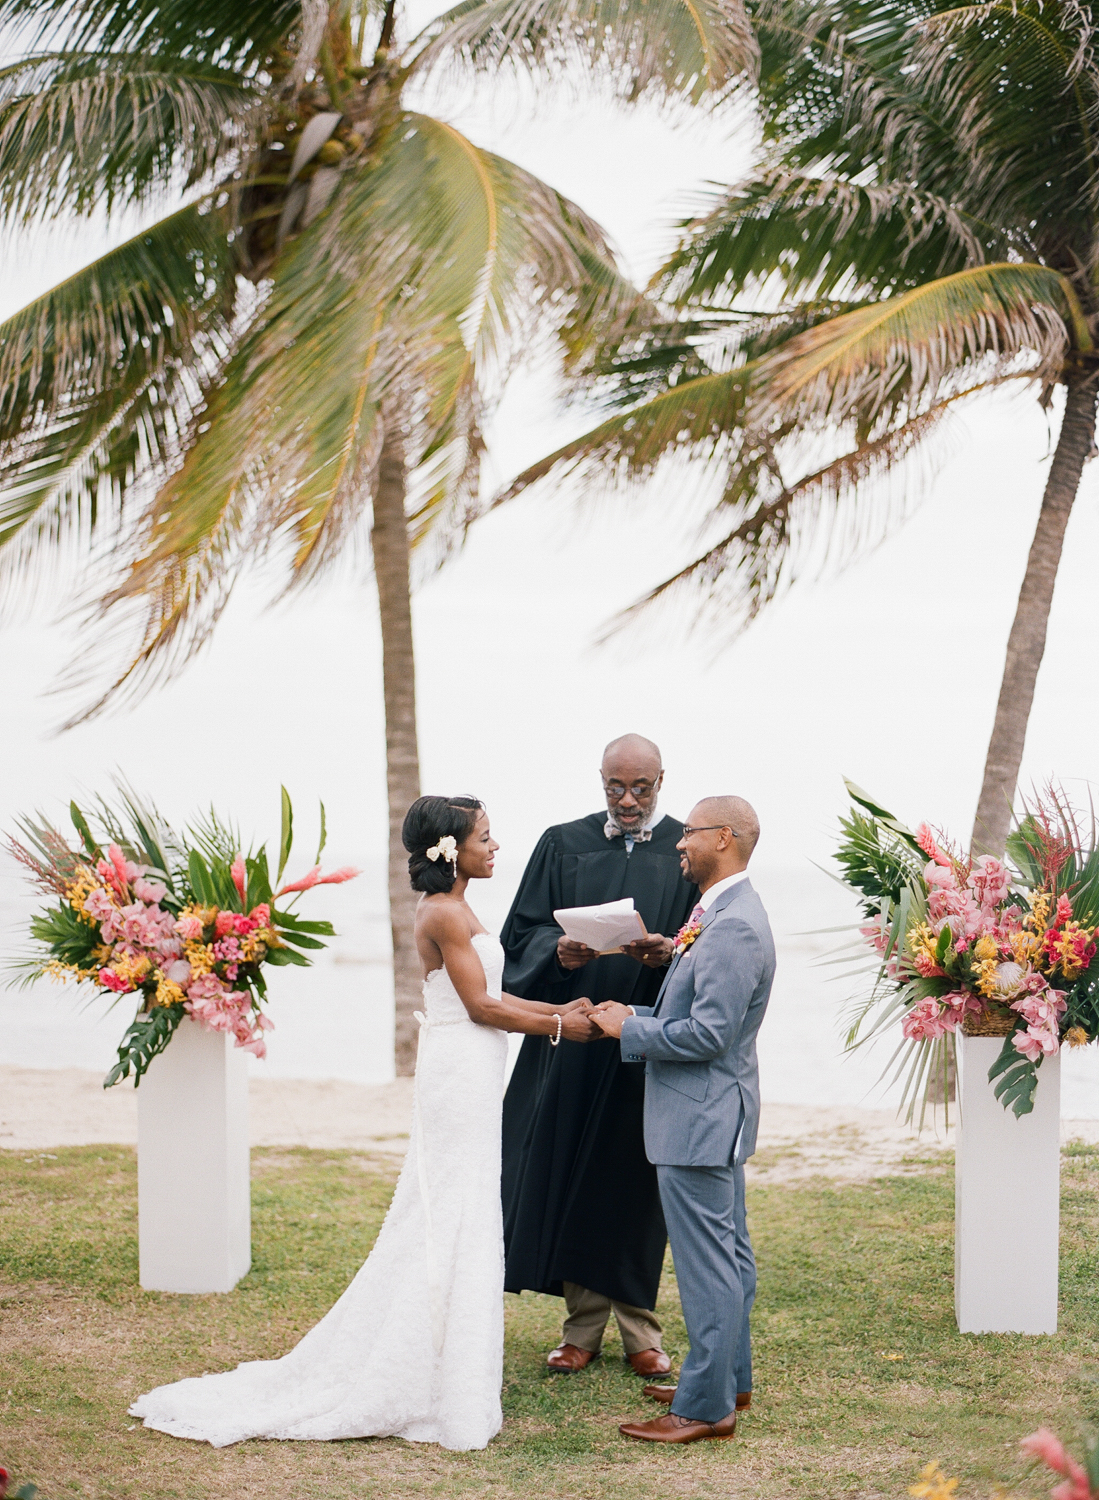 Bride and groom at Montego Bay, Jamaica ceremony, exchanging vows underneath palm trees; Sylvie Gil Photography